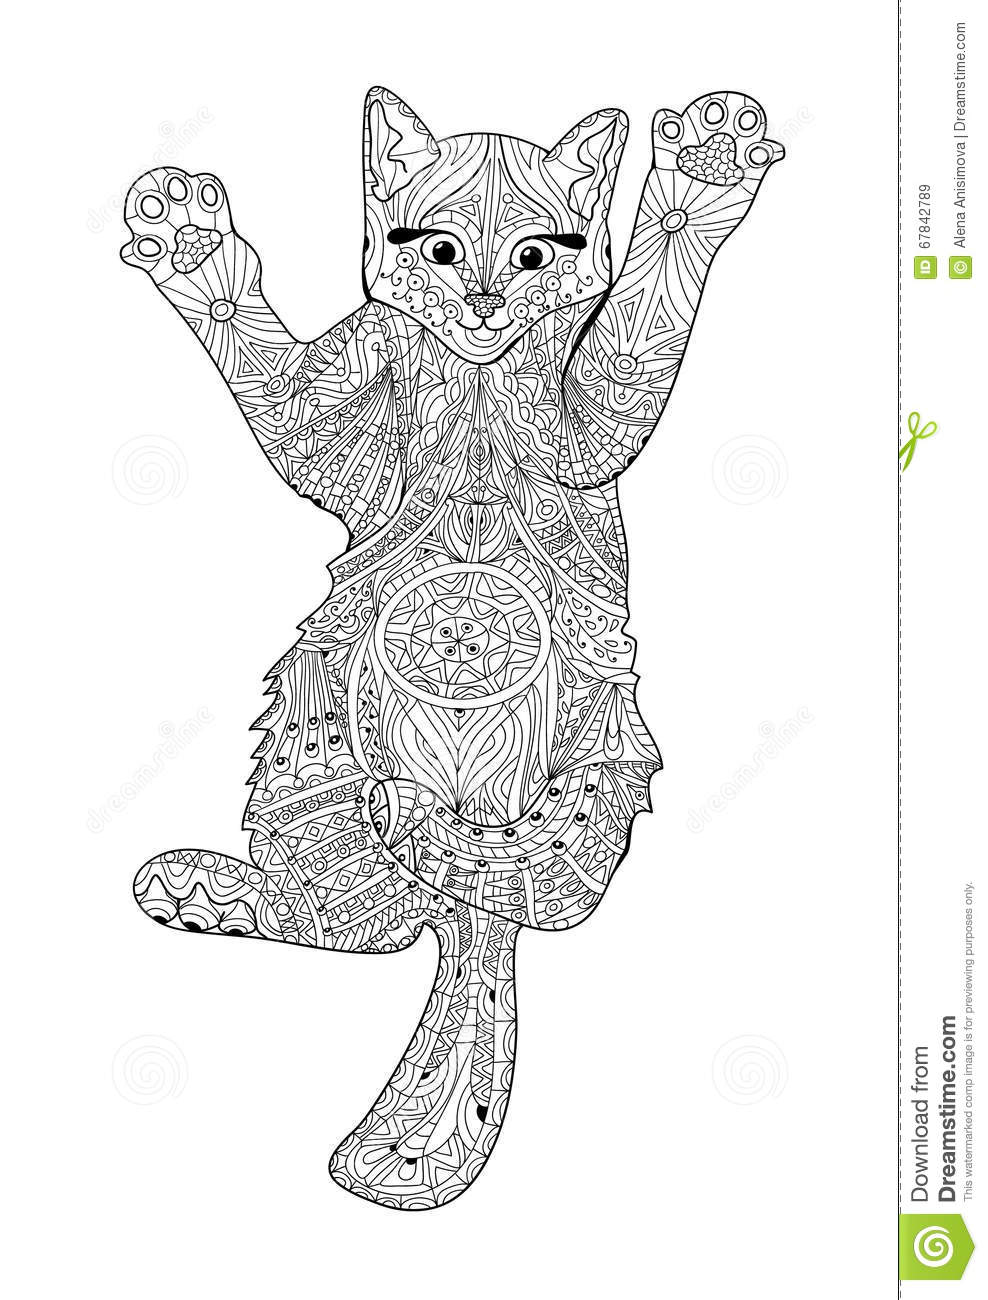 Stunning Cat Coloring Book Pages Photo Inspirations – Slavyanka | 1300x988